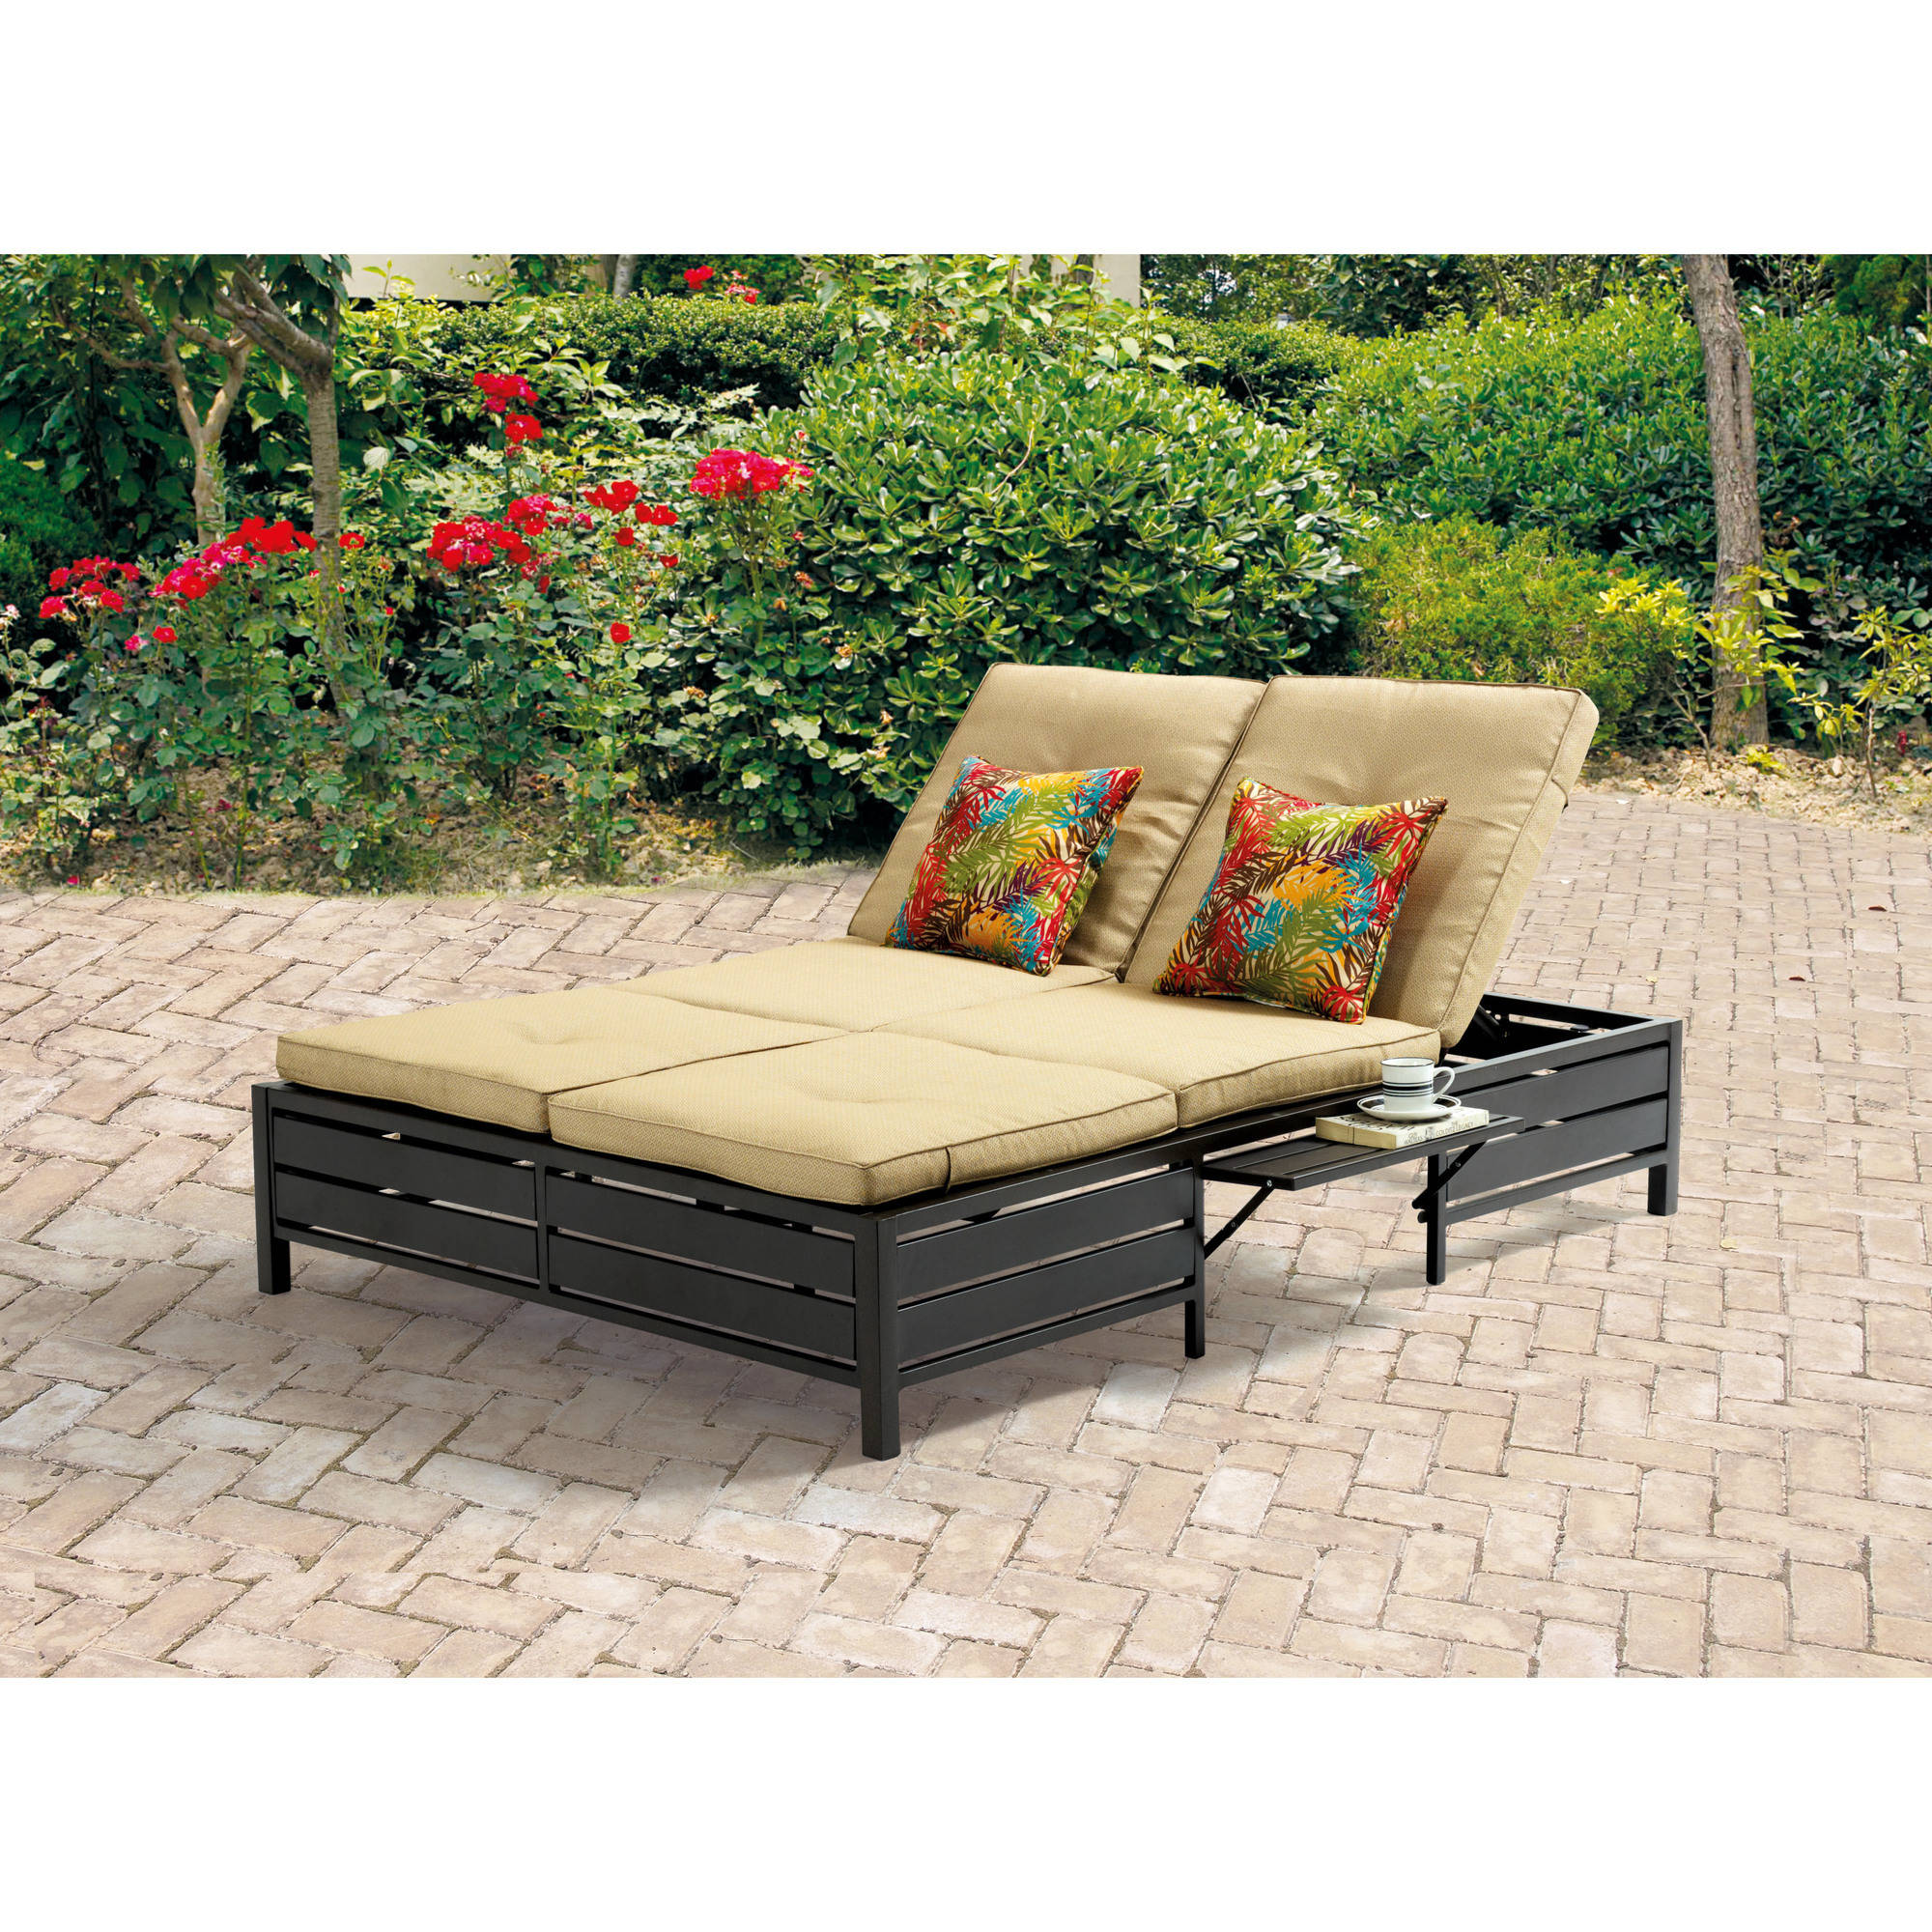 Mainstays Outdoor Double Chaise Lounger, Tan, Seats 2   Walmart.com